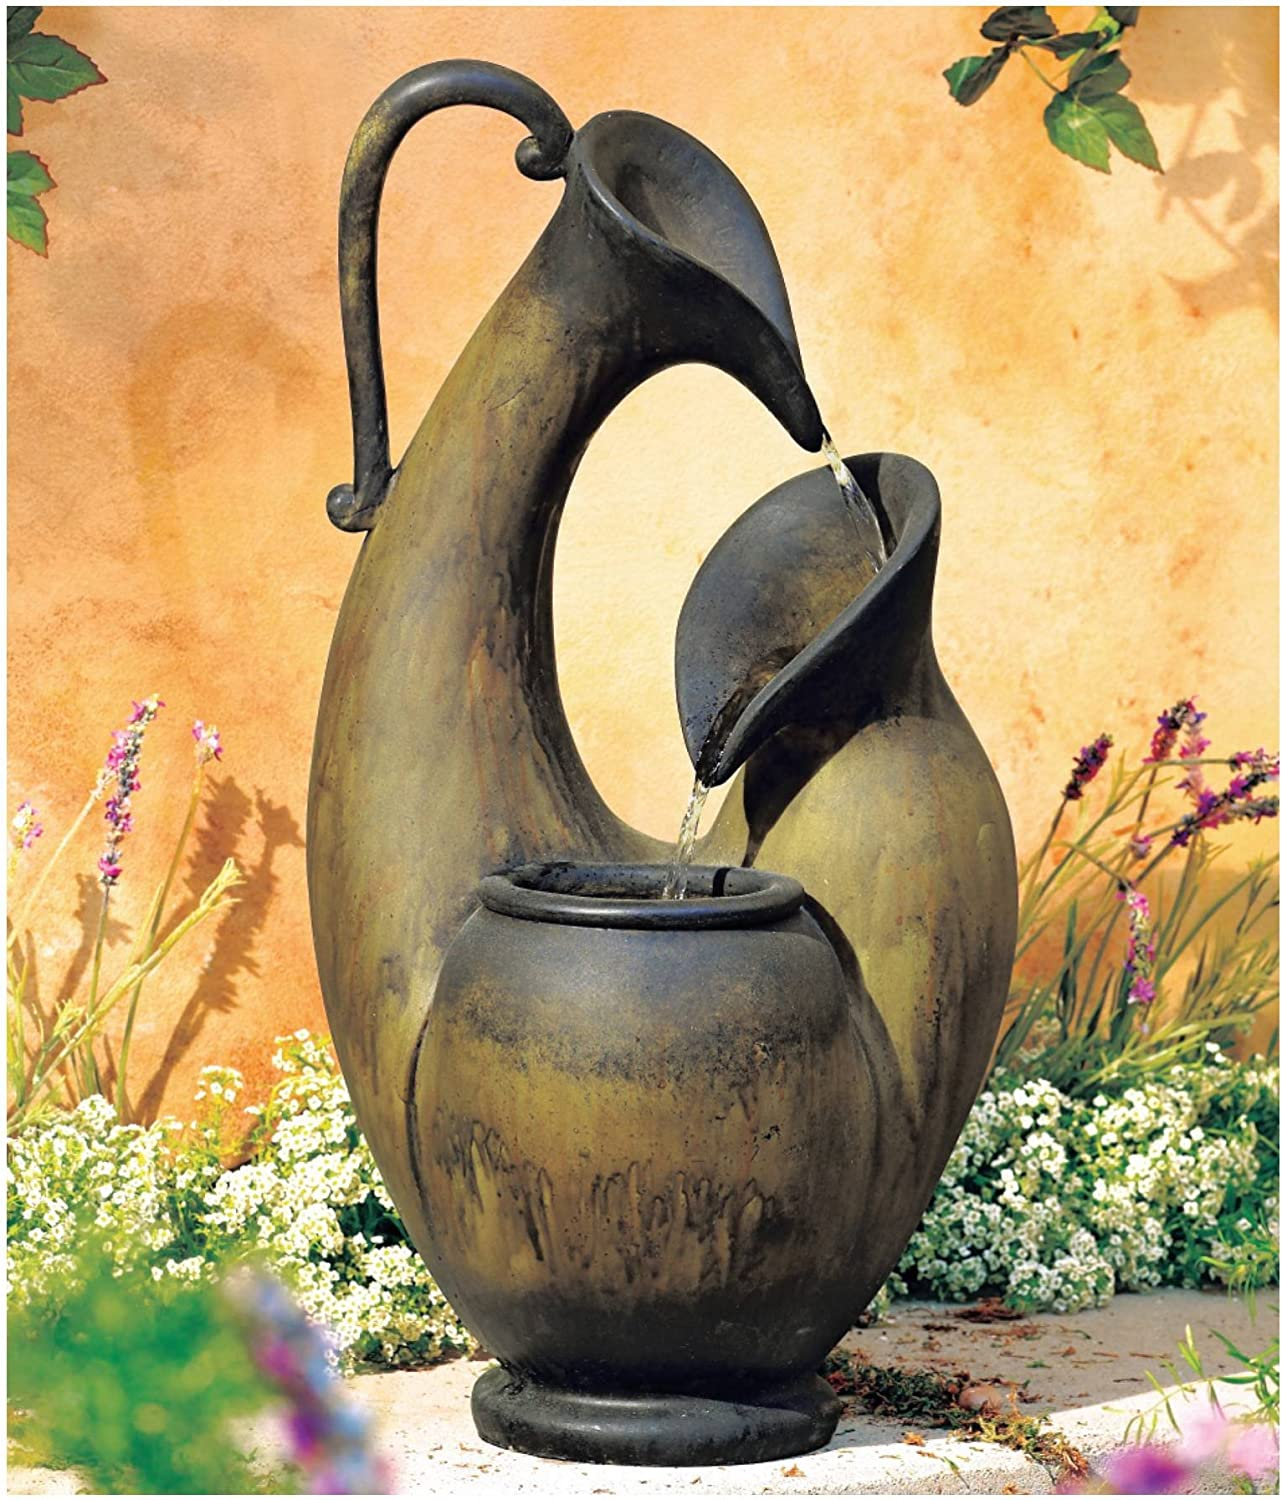 """Weathered Jug Mediterranean Table-Top Water Fountain 24"""" High Cascading for Table Desk Yard Garden Patio Deck Home Relaxation - John Timberland"""